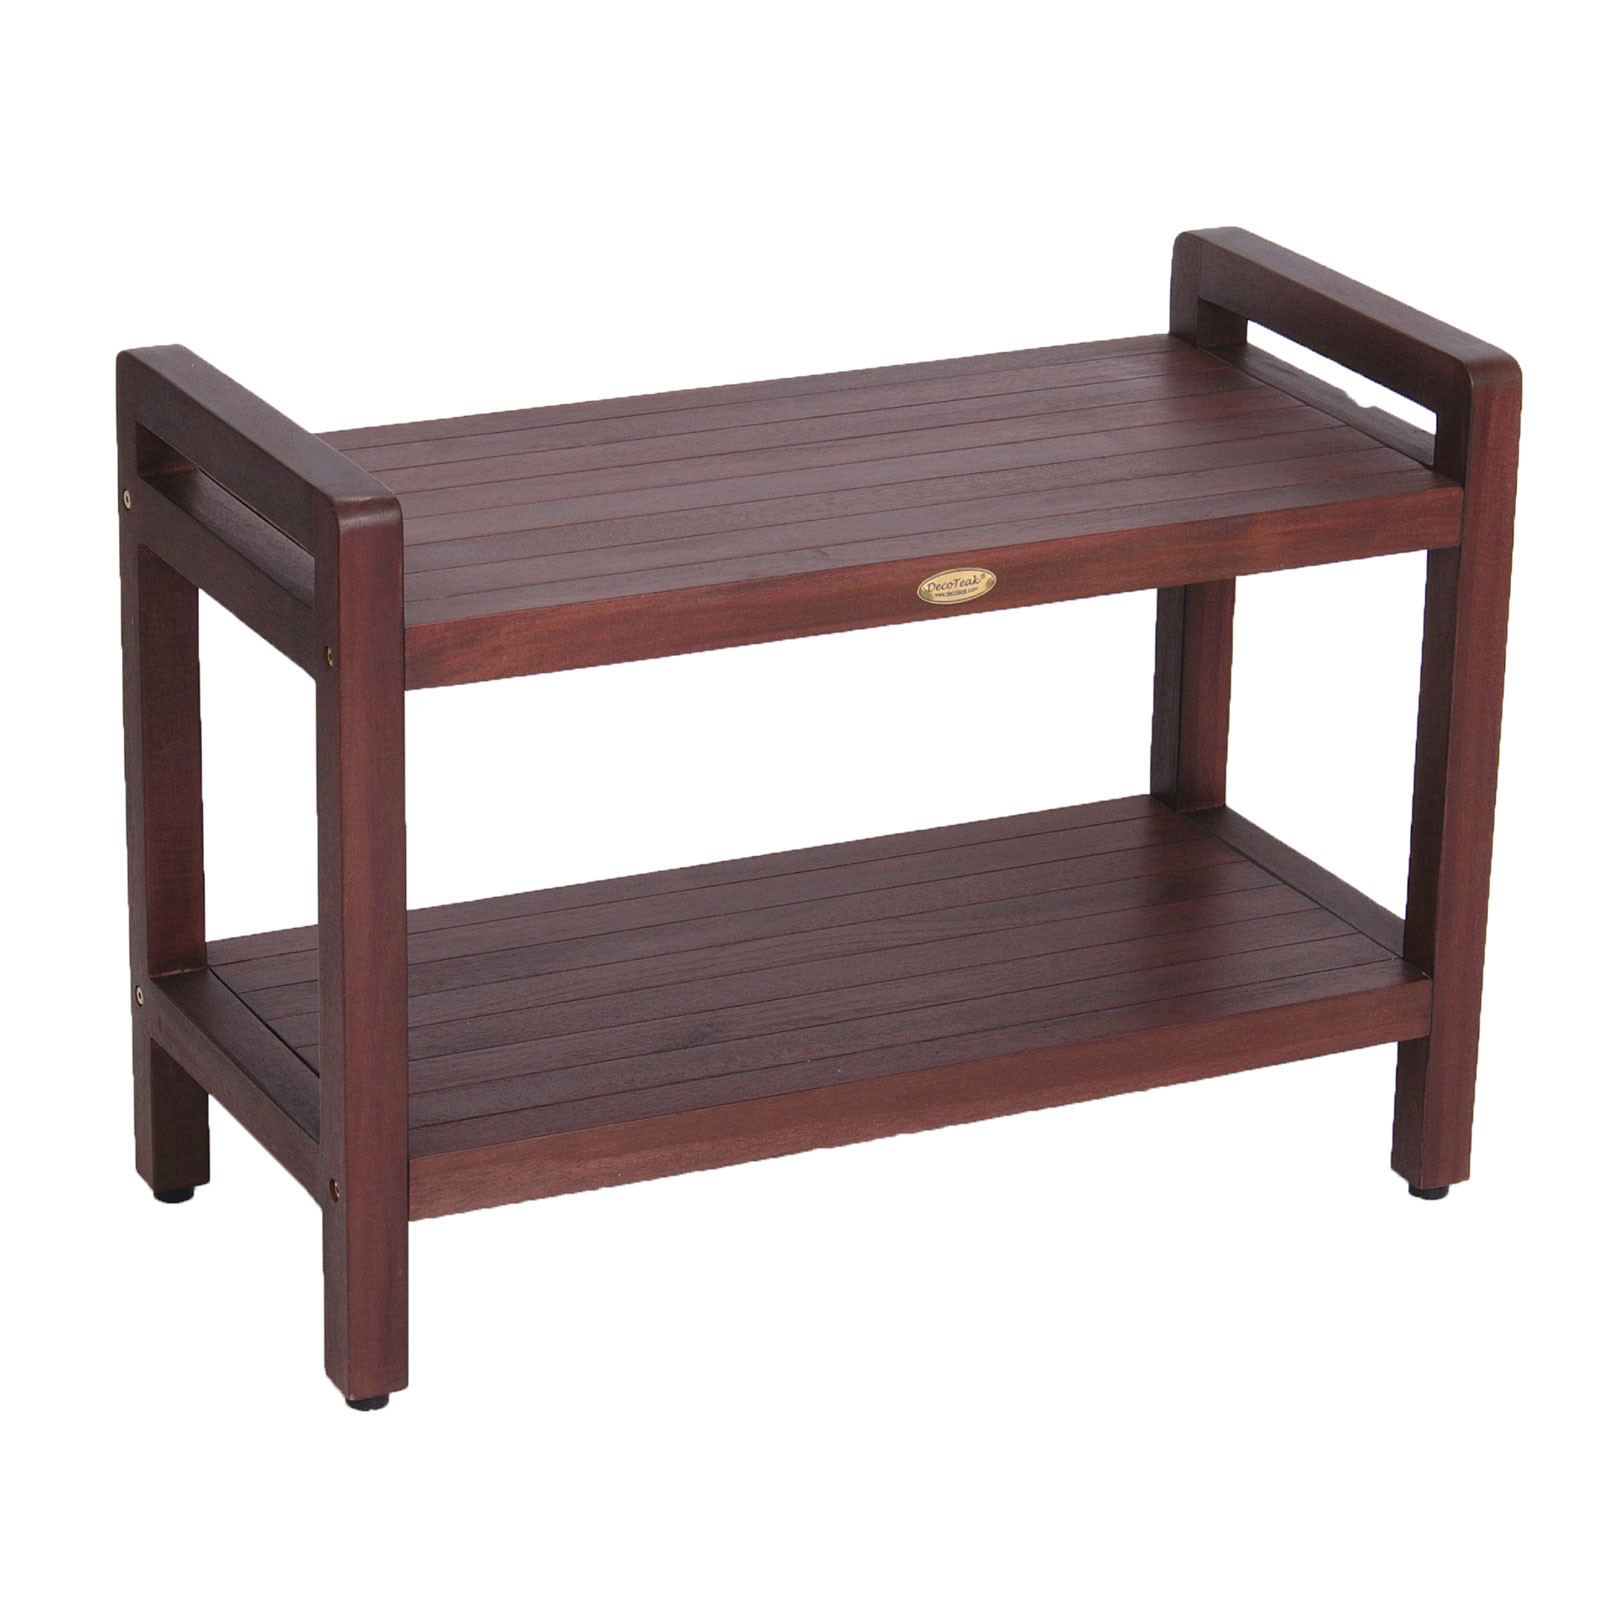 "Decoteak DT174 Classic 29"" Extended Length Ergonomic Teak Shower Stool with Liftaid Arms and Shelf"